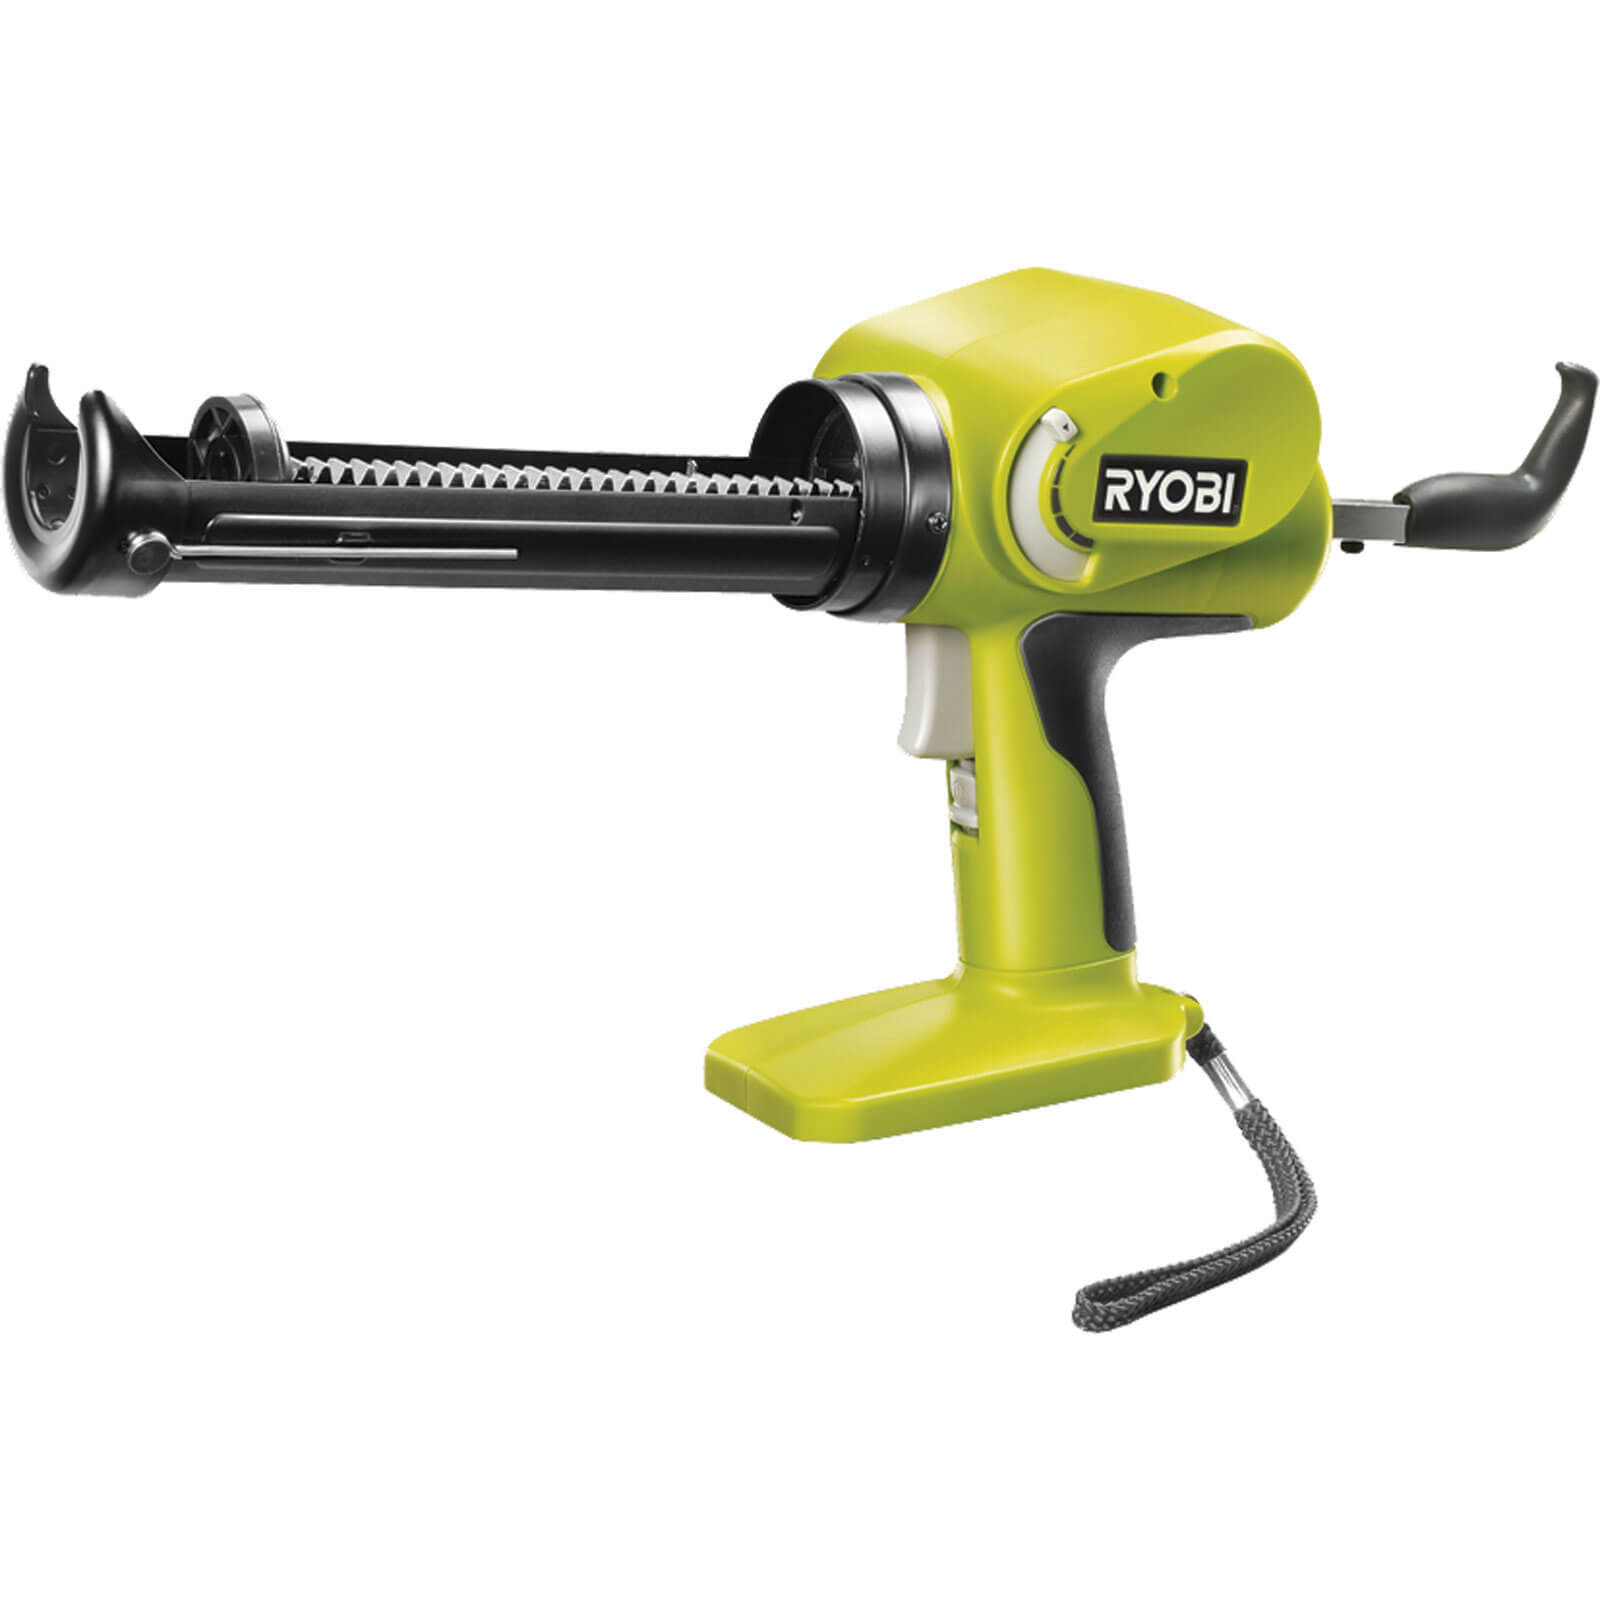 Ryobi CCG1801MHG ONE+ 18v Cordless Caulking Gun without Battery or Charger